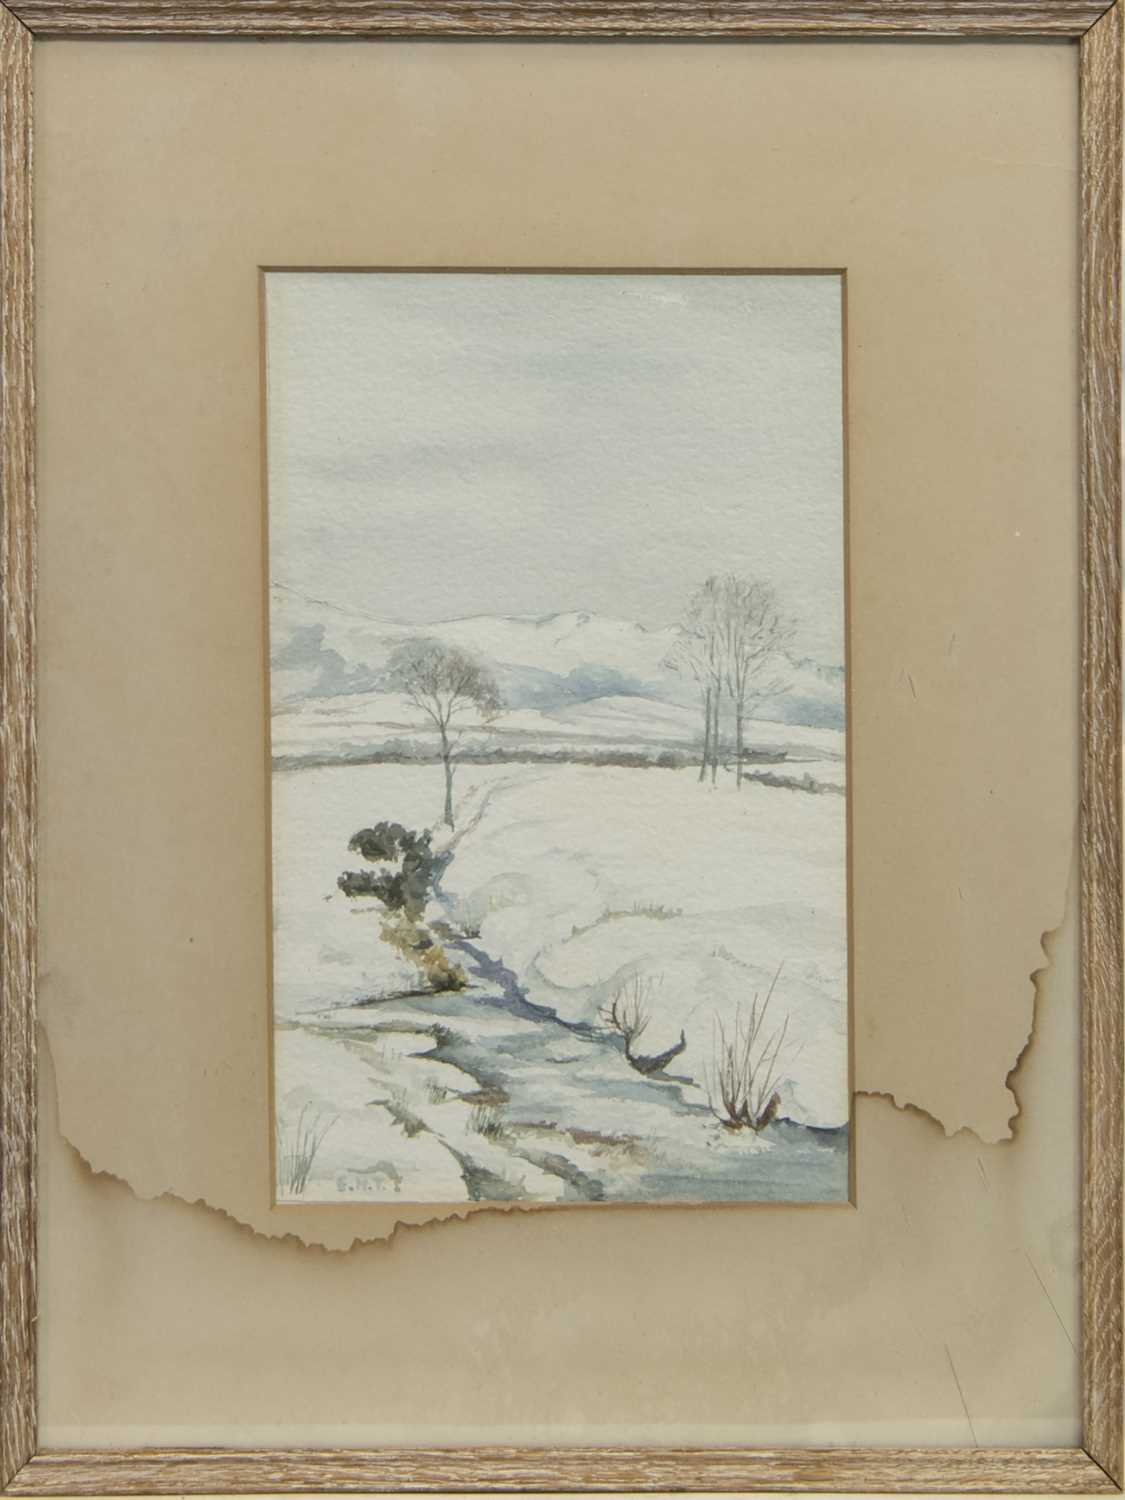 Lot 63 - STEAM AT CARTMEL, A WATERCOLOUR BY EDWARD HORRACE THOMPSON